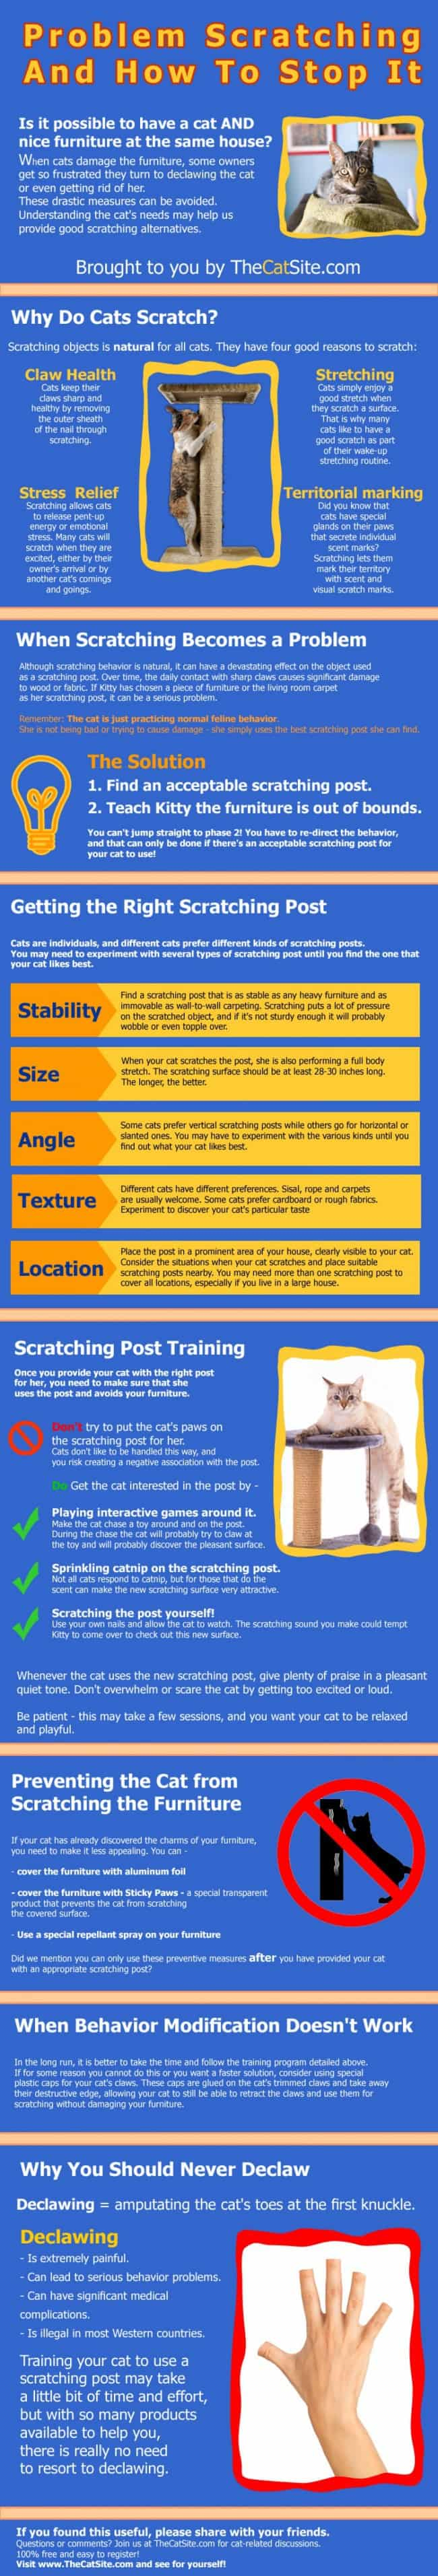 cats-problem-scratching-and-how-to-stop-it_52ca6c7f12b39_w1500